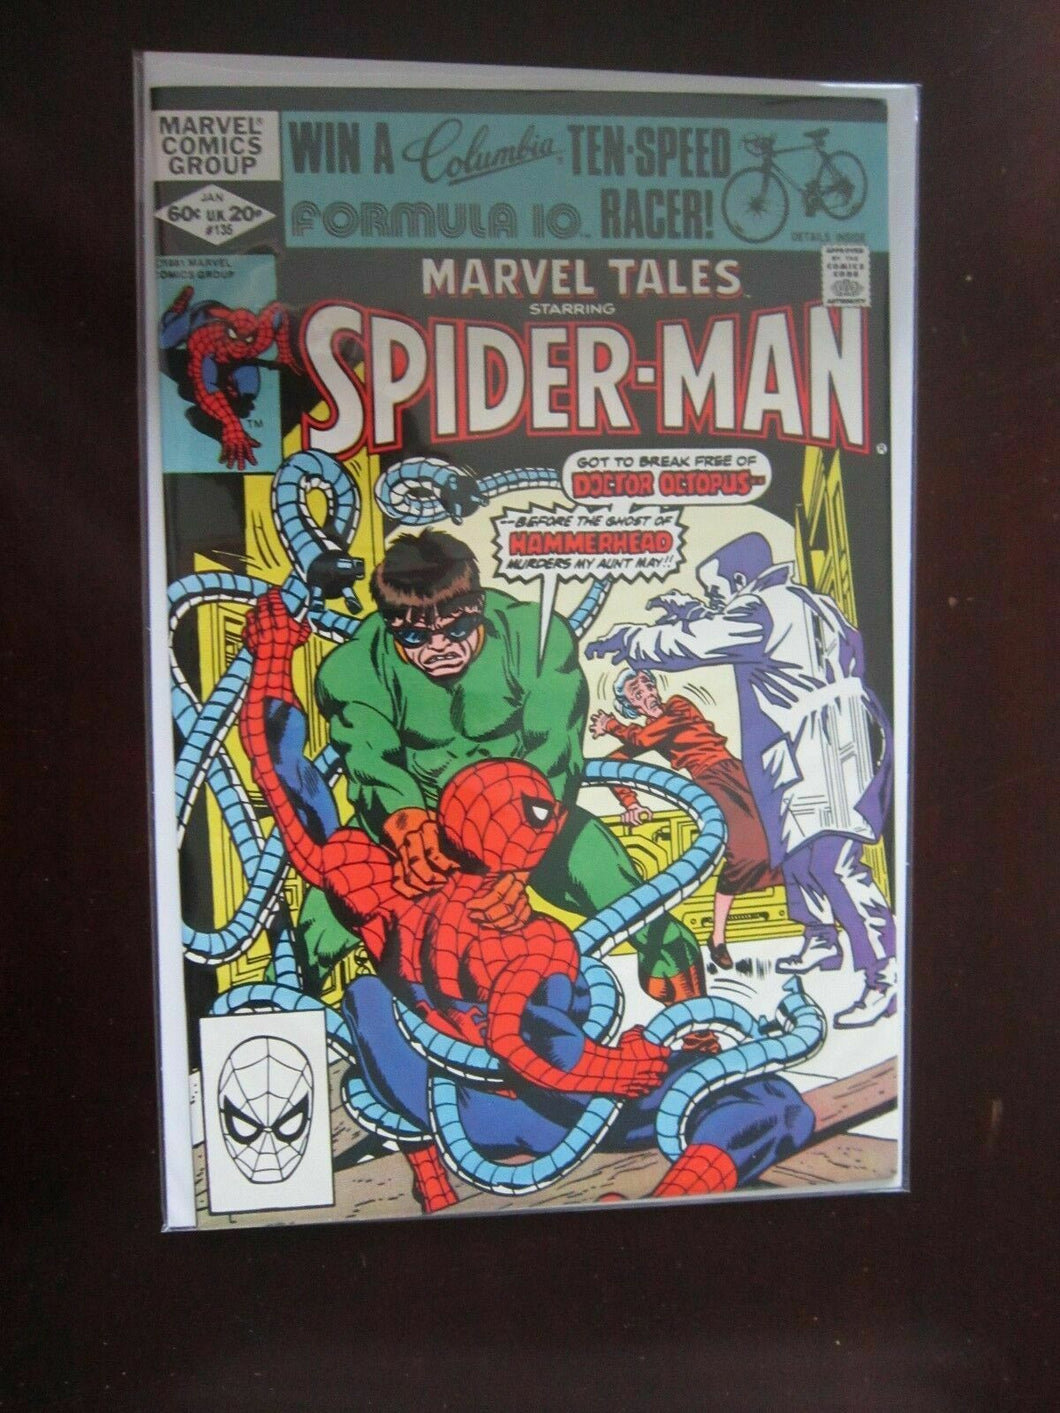 Marvel Tales #135 Direct - Spiderman - 9.2 - 1981